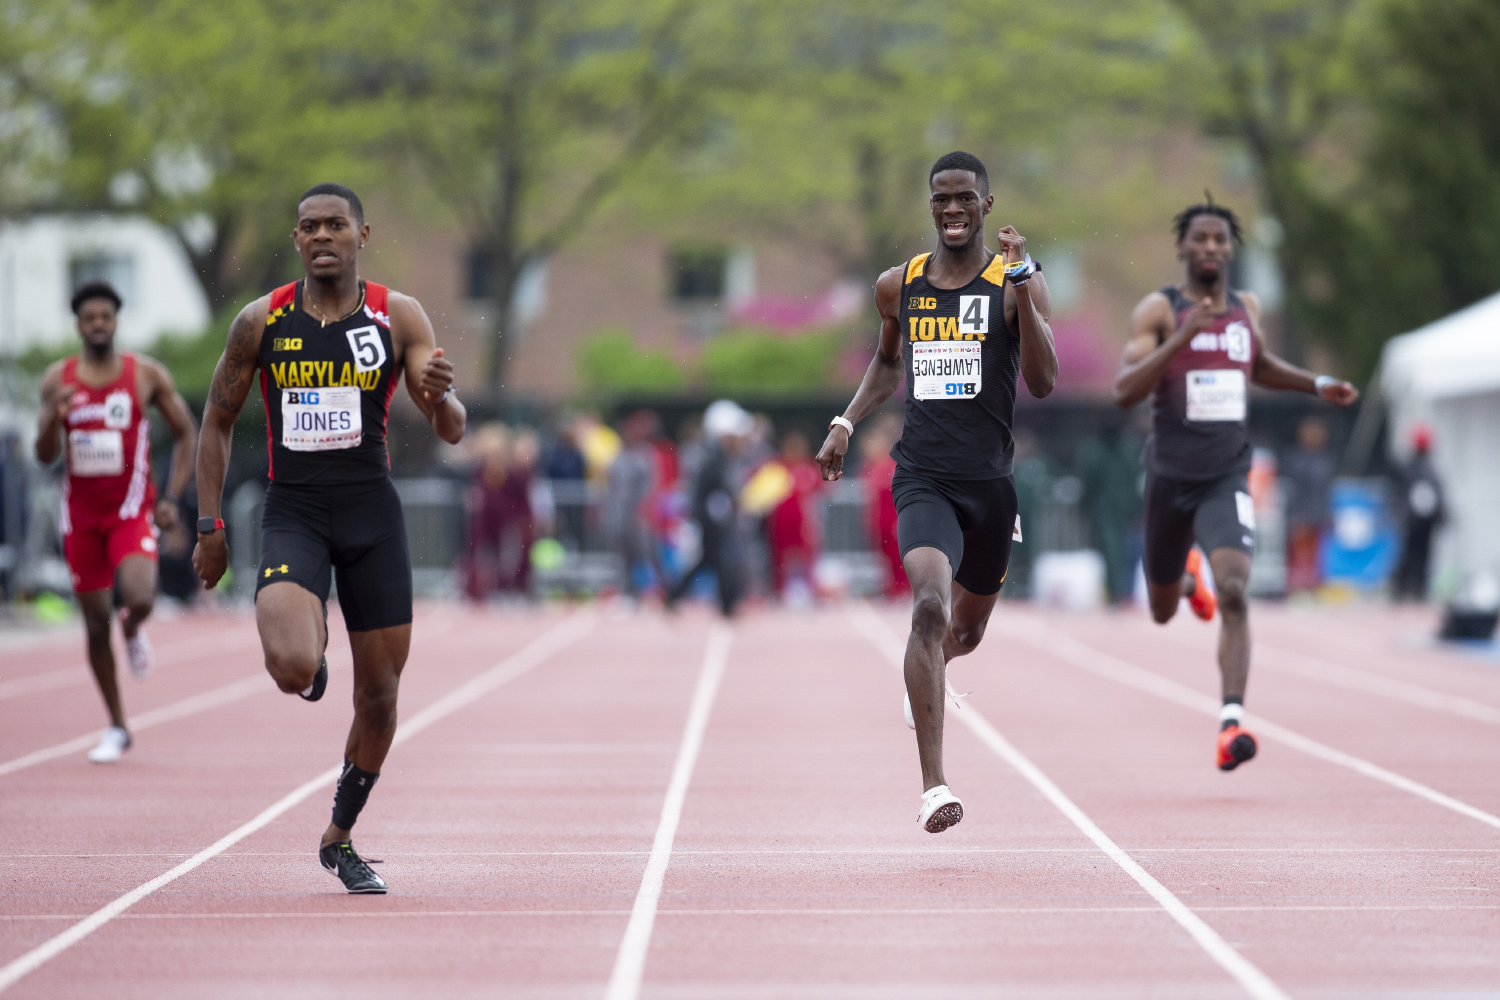 University of Iowa freshman Wayne Lawrence Jr. competes in the 400 meter dash preliminaries during the second day of the Big Ten Track and Field Outdoor Championships at Cretzmeyer Track on Saturday, May 11, 2019. Lawrence placed ninth in the 400 meter dash preliminaries.